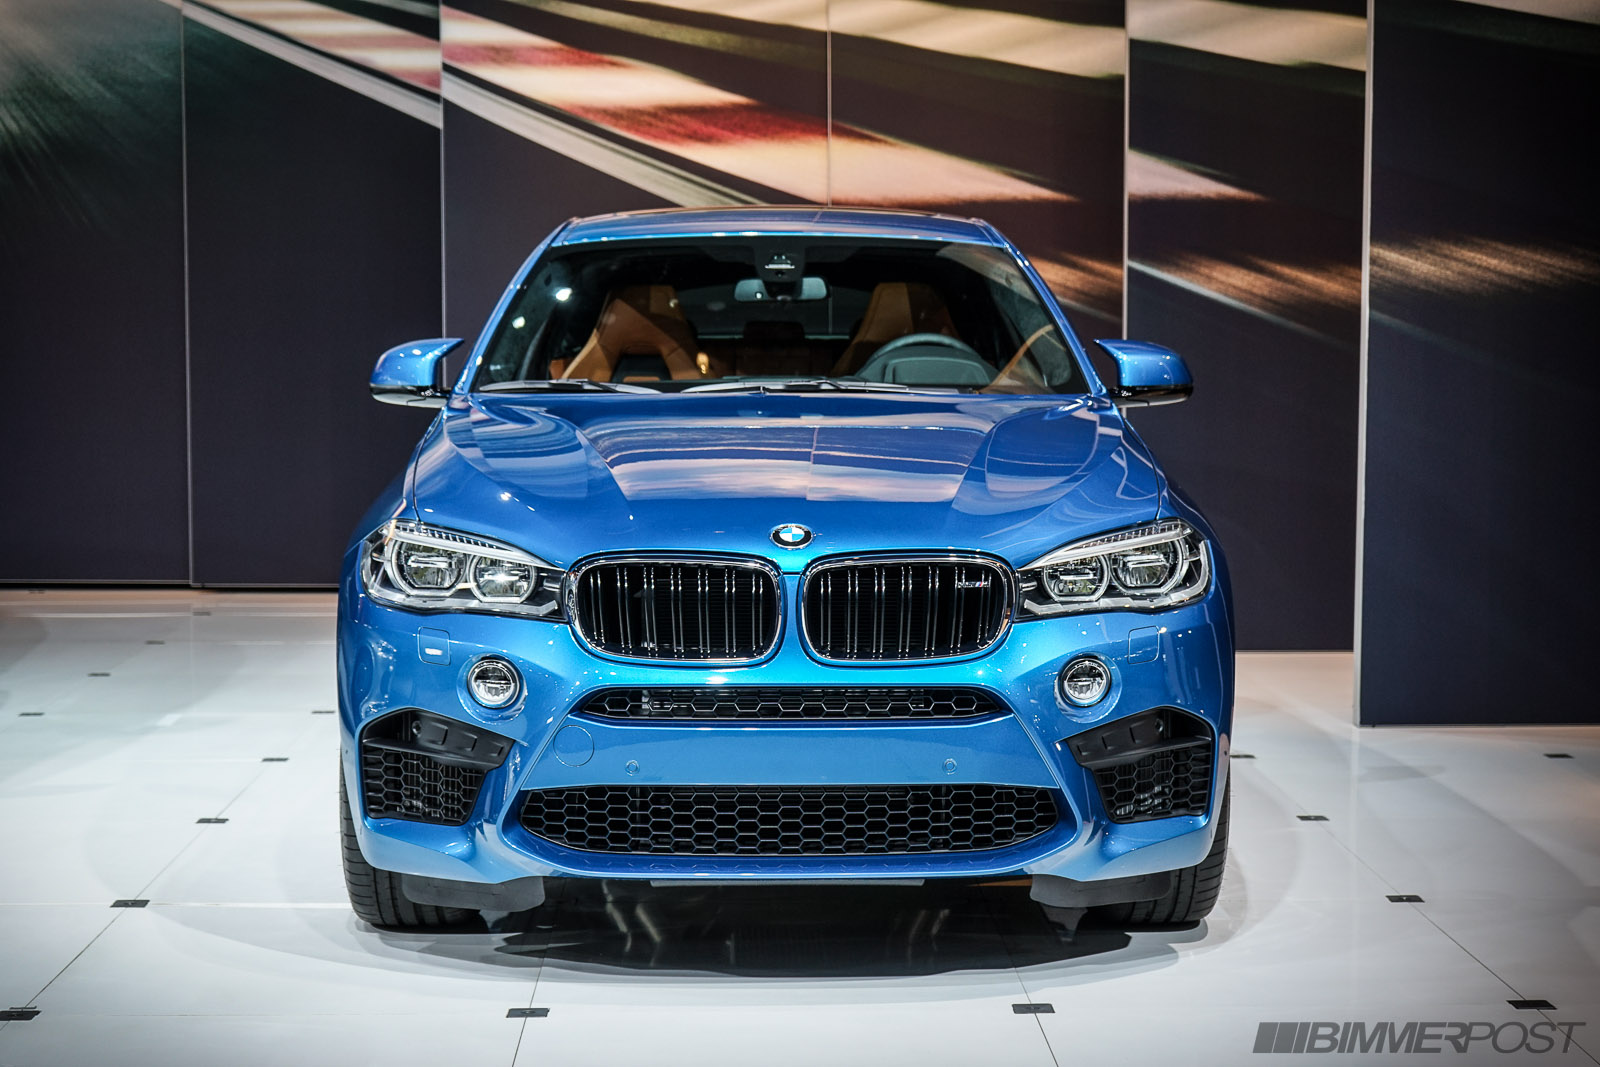 bmw x6 m bmw forum bmw news and bmw blog bimmerpost. Black Bedroom Furniture Sets. Home Design Ideas